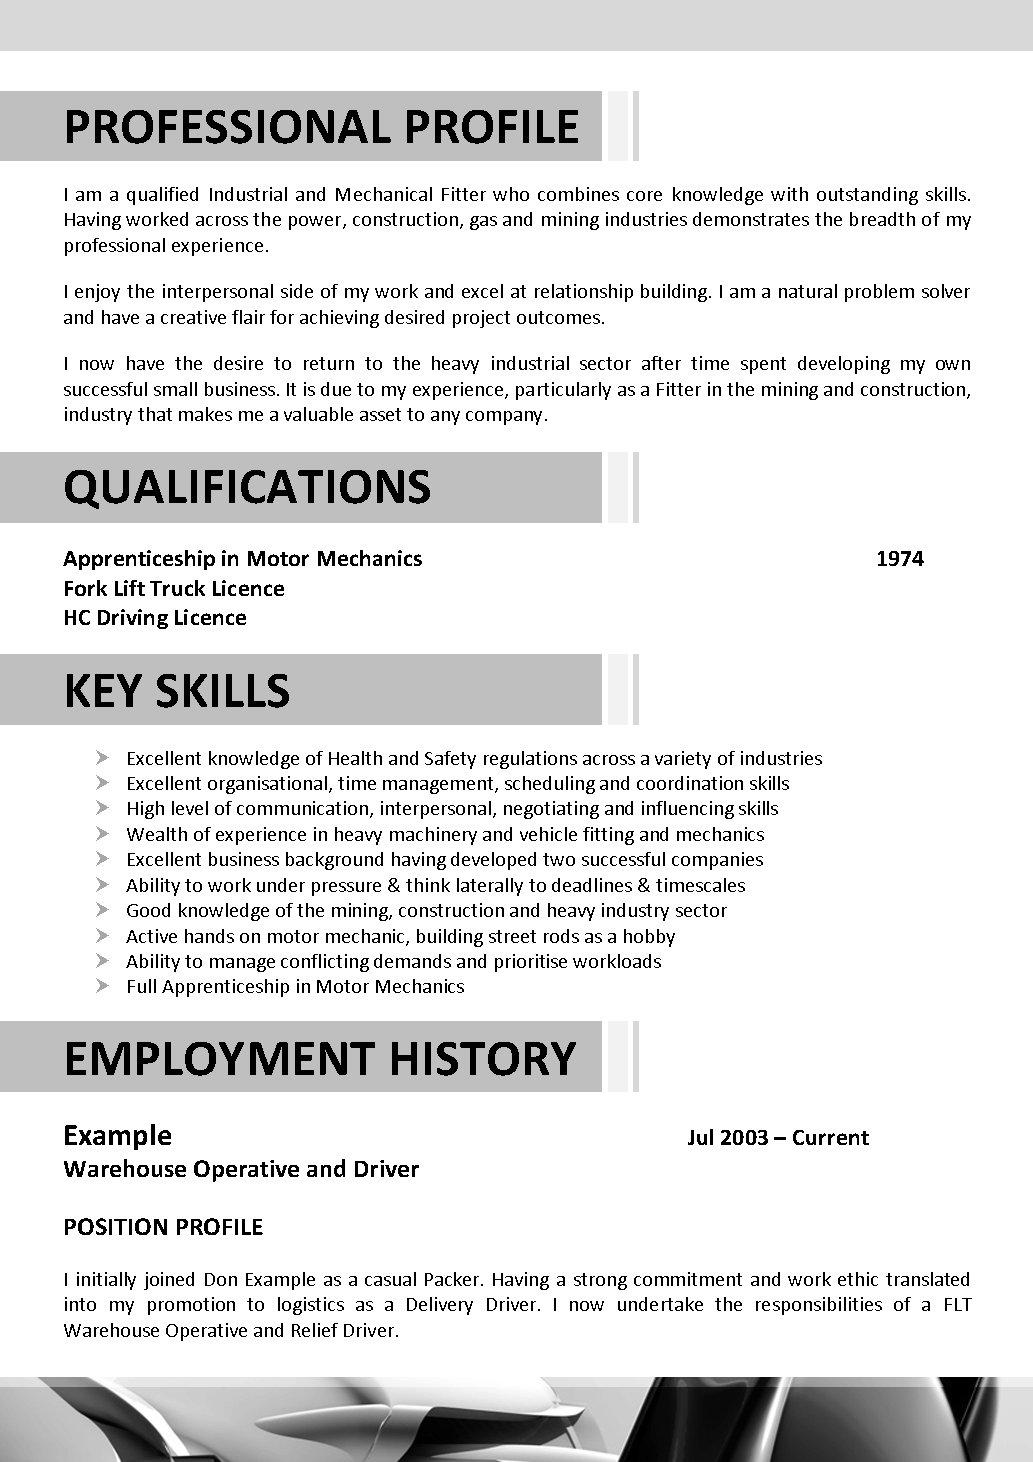 curriculum vitae meaning in tagalog resume sles for